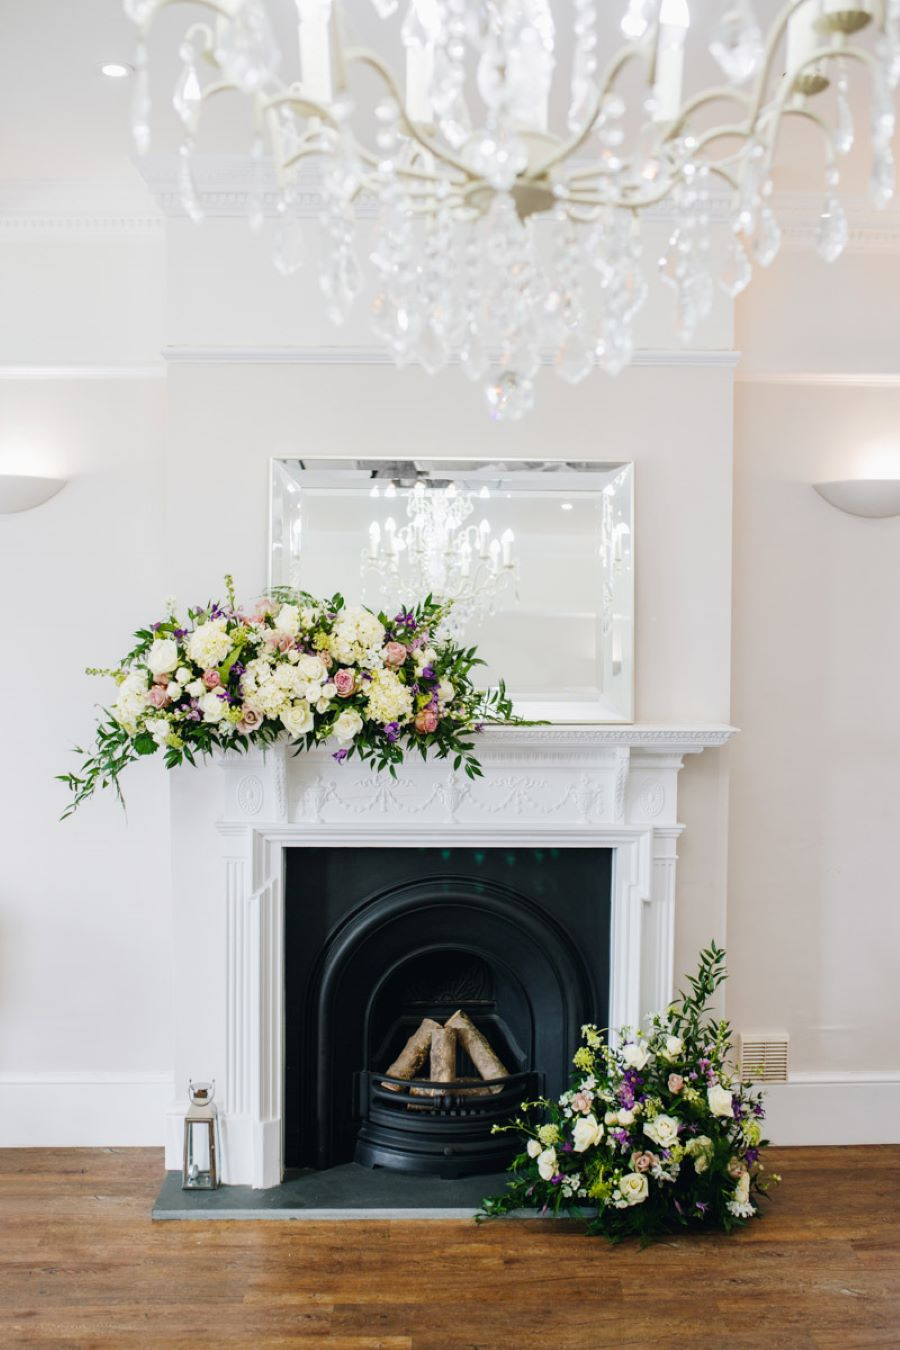 Light and romance with natural blush tones - wedding ideas from Downham Hall. Photographer credit Magical Moments Photography (20)